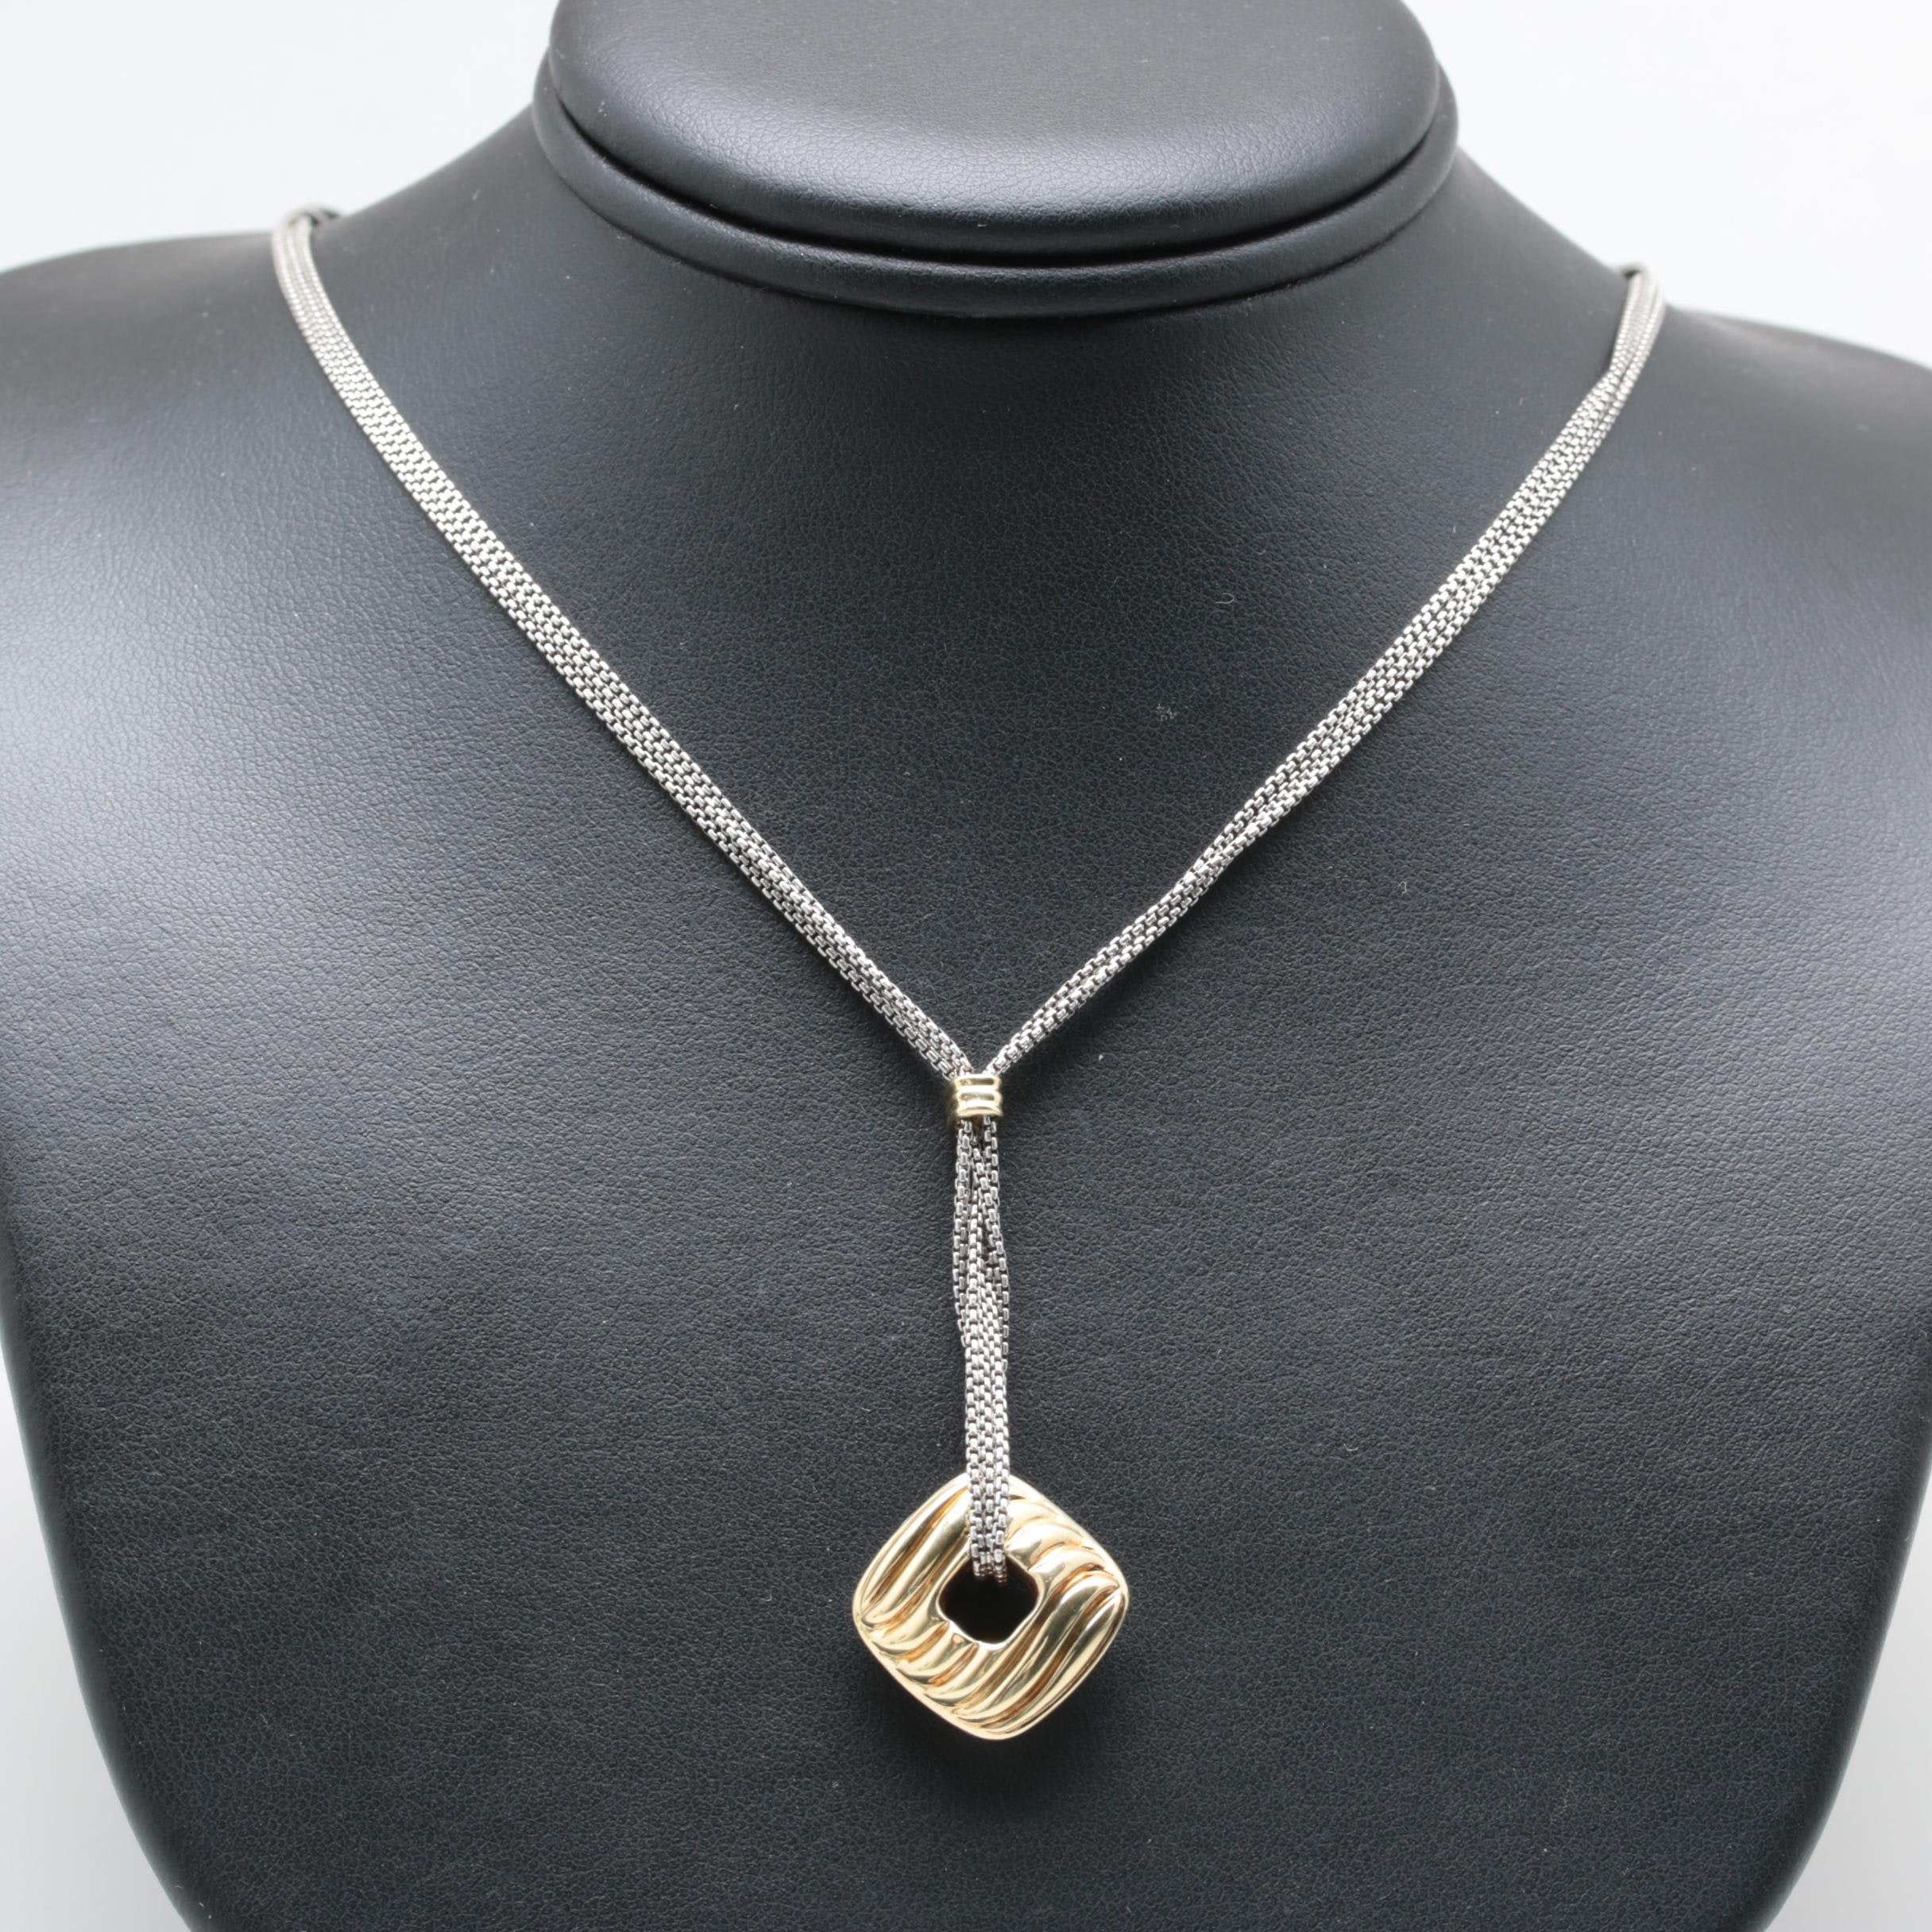 David Yurman Sterling Silver Necklace with 18K Yellow Gold Accents